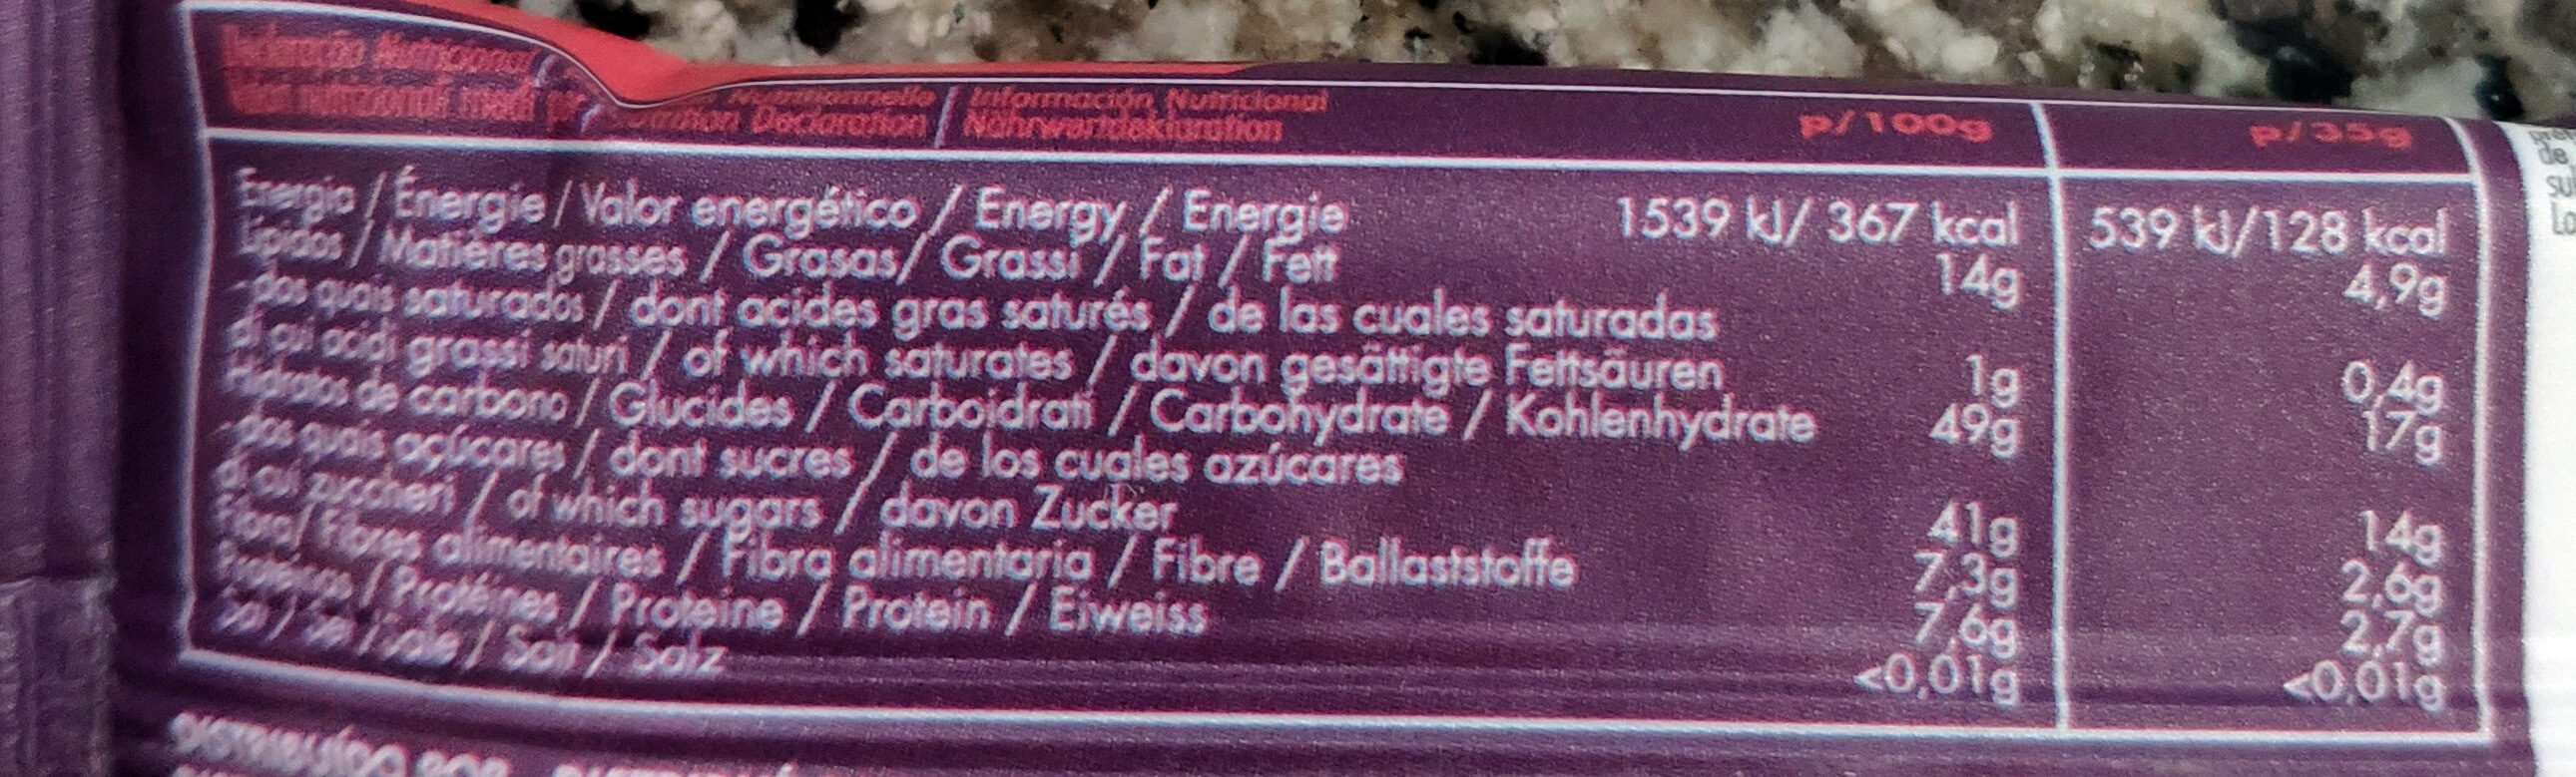 Buddha Energy - Acai, Banana & Strawberry - Informations nutritionnelles - fr